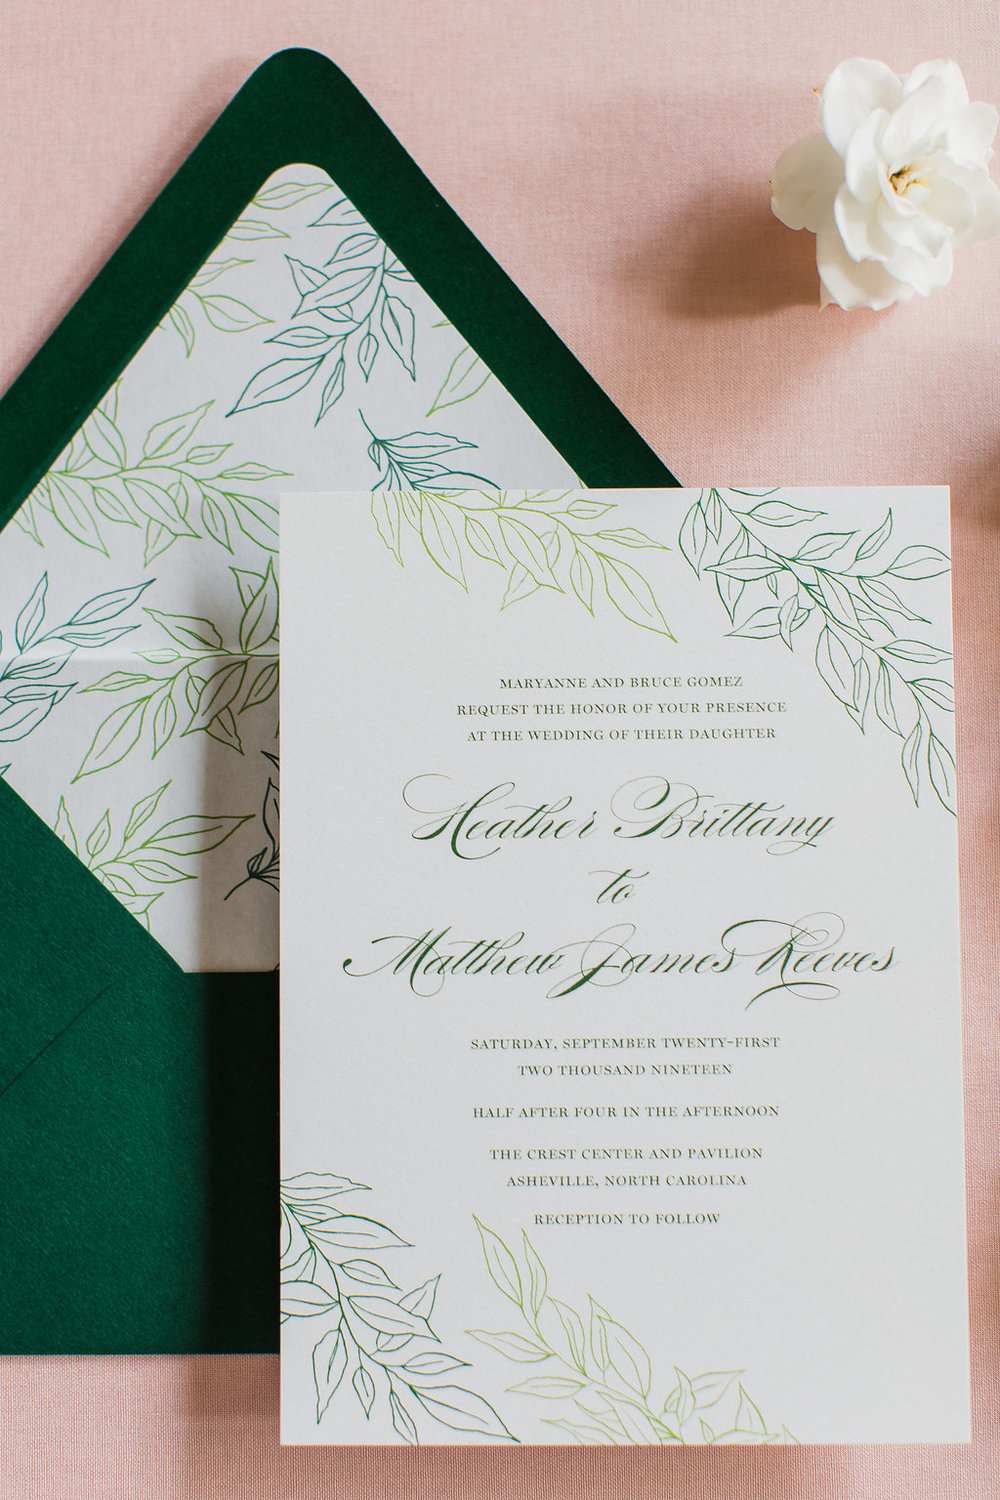 Heather Hand Drawn Wedding Invitation Greenery Feathered Heart PrintsFHP-37.jpg